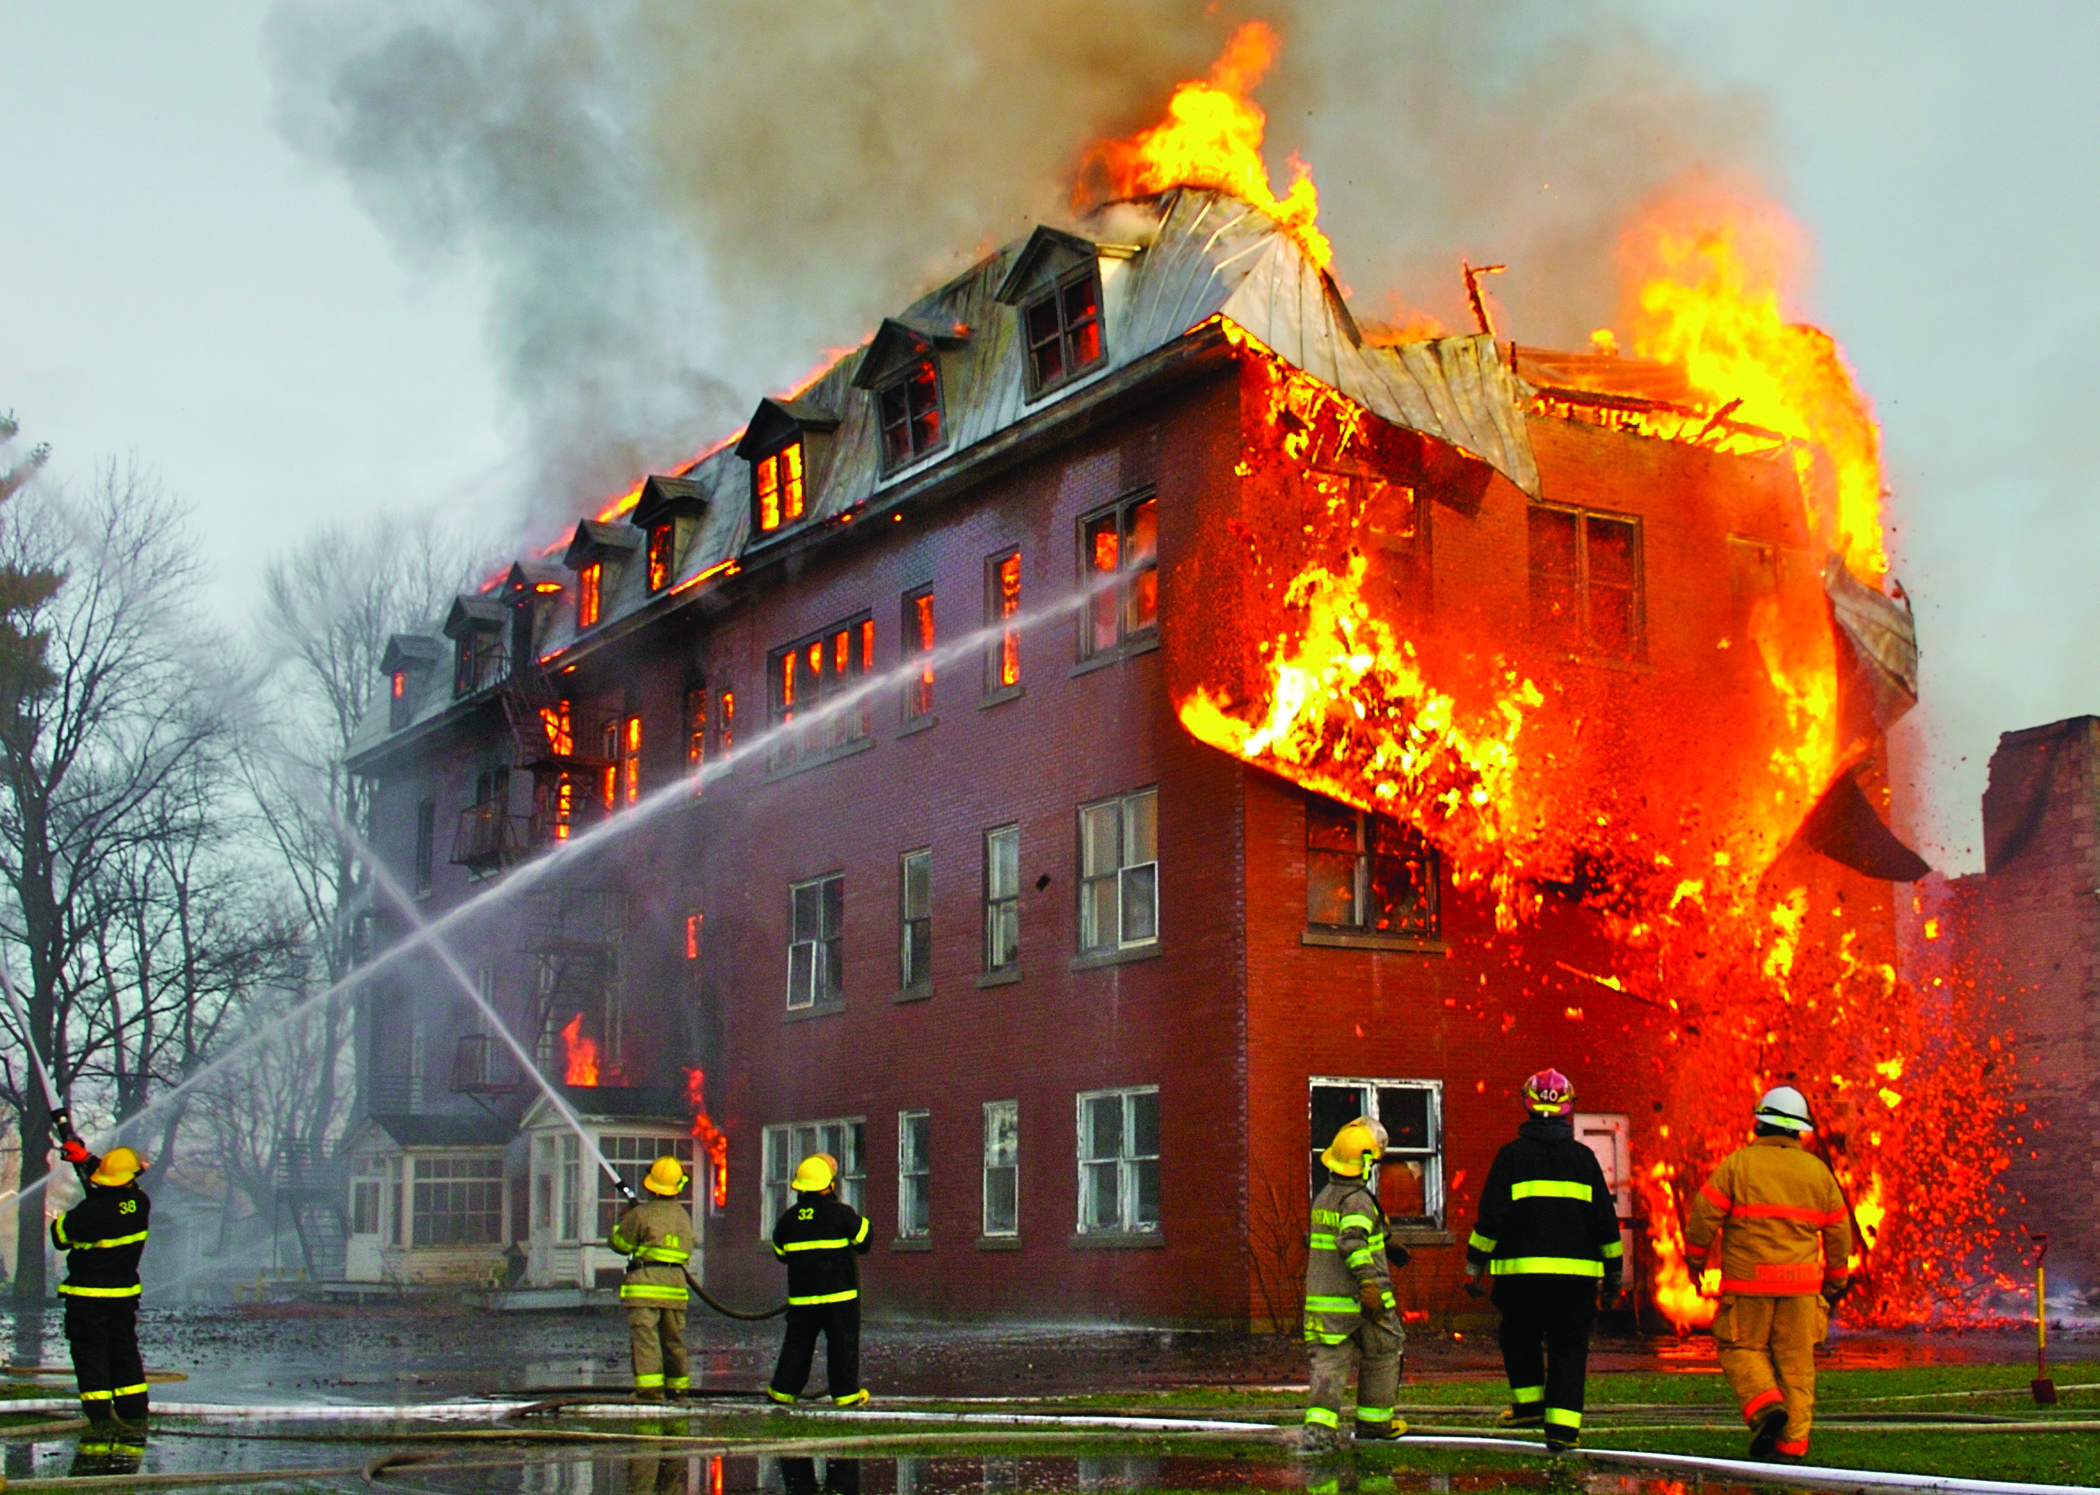 Figure 11. A major fire engulfs an urban structure despite efforts by firefighters to extinguish it.